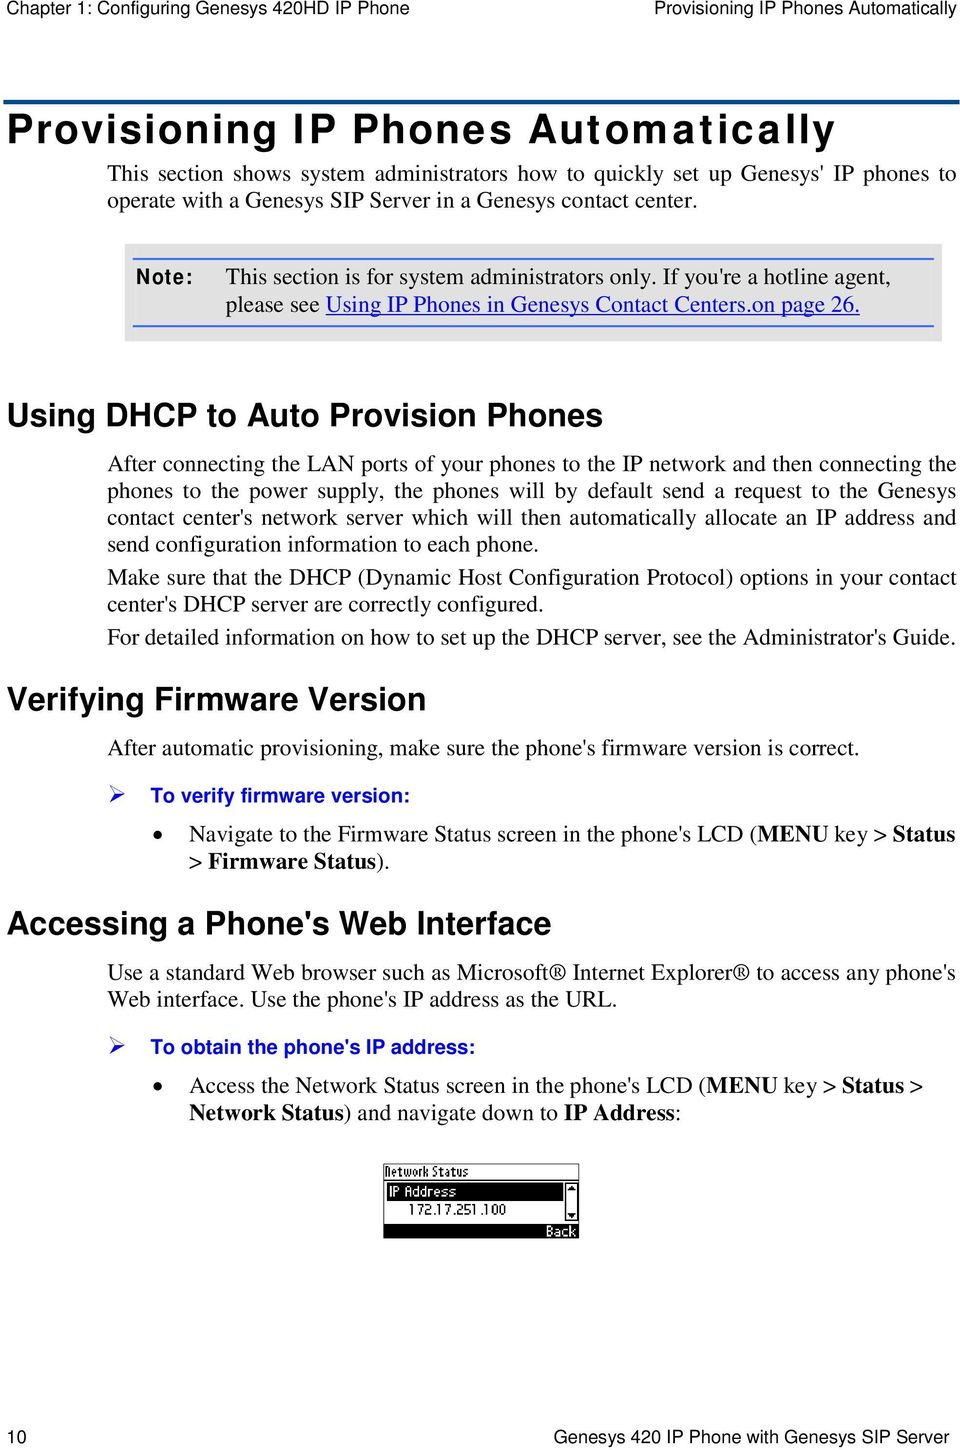 Using DHCP to Auto Provision Phones After connecting the LAN ports of your phones to the IP network and then connecting the phones to the power supply, the phones will by default send a request to